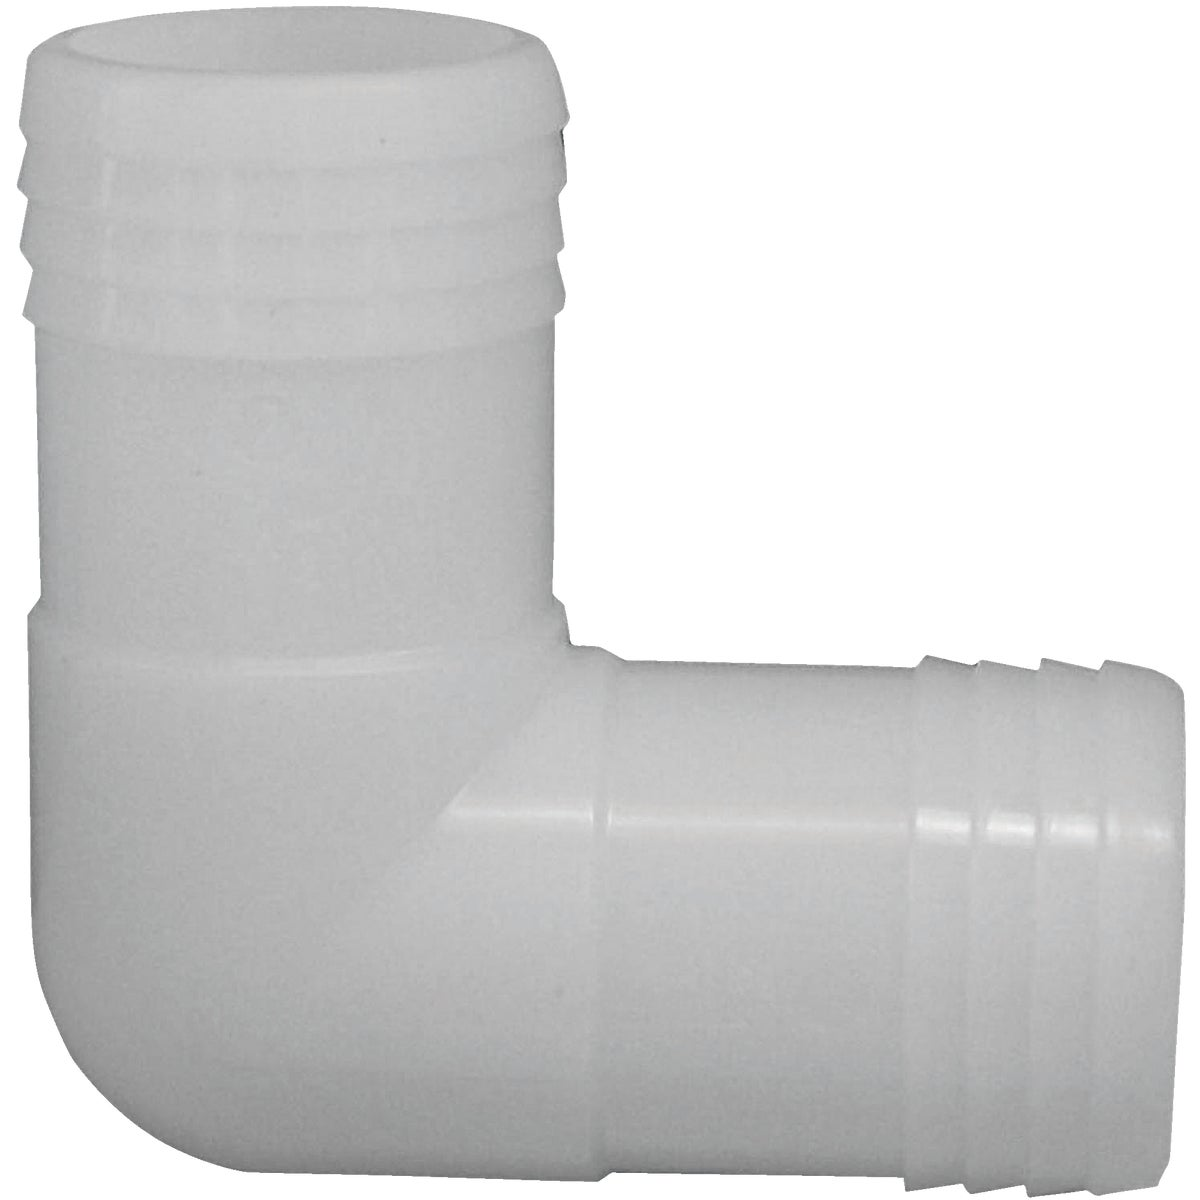 "1-1/2""NYLON INSERT ELBOW"